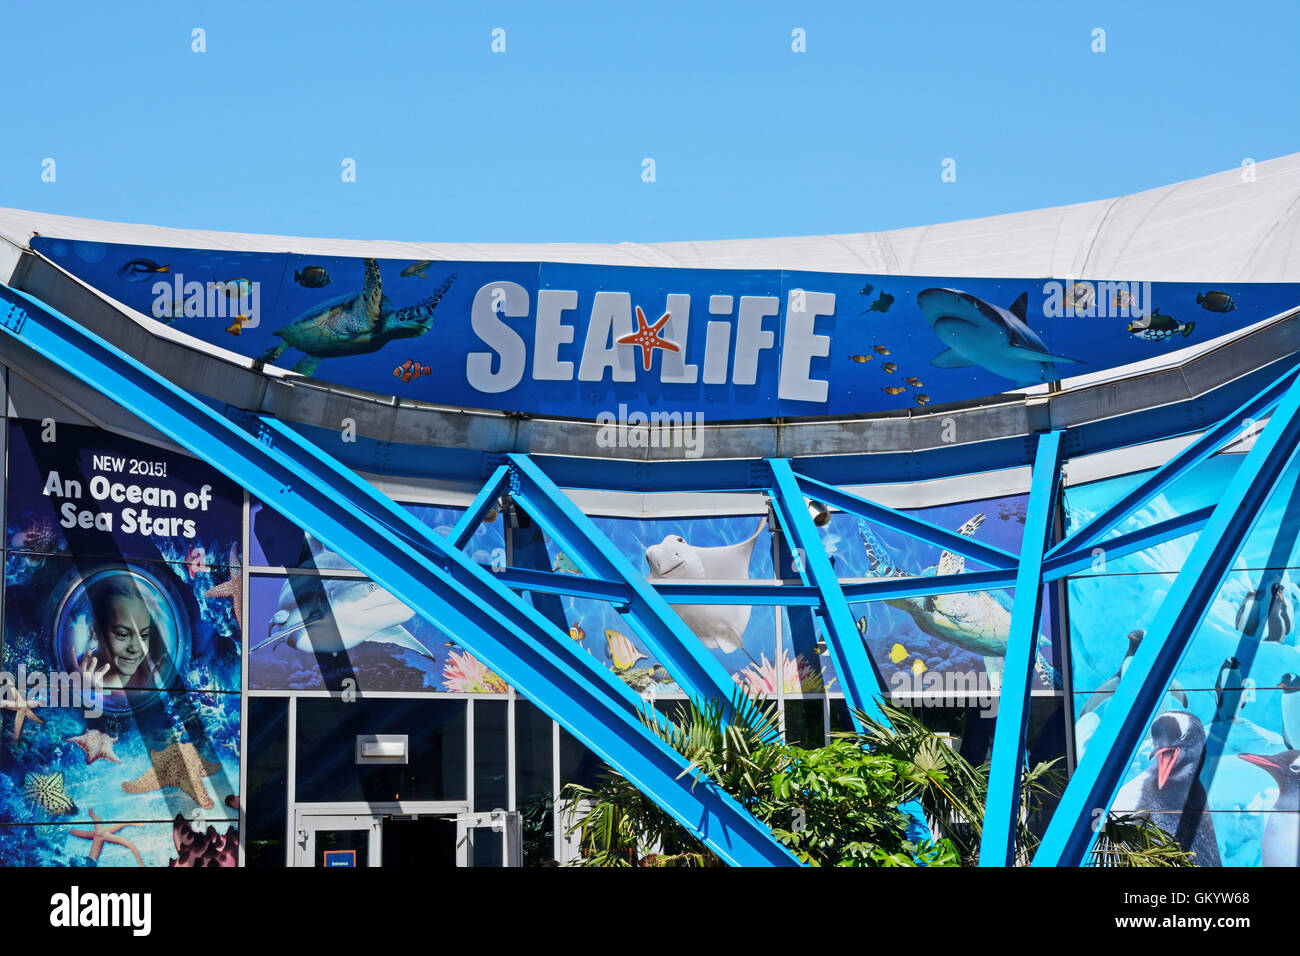 Front view of the National Sea Life Centre, Birmingham, England, UK, Western Europe. - Stock Image